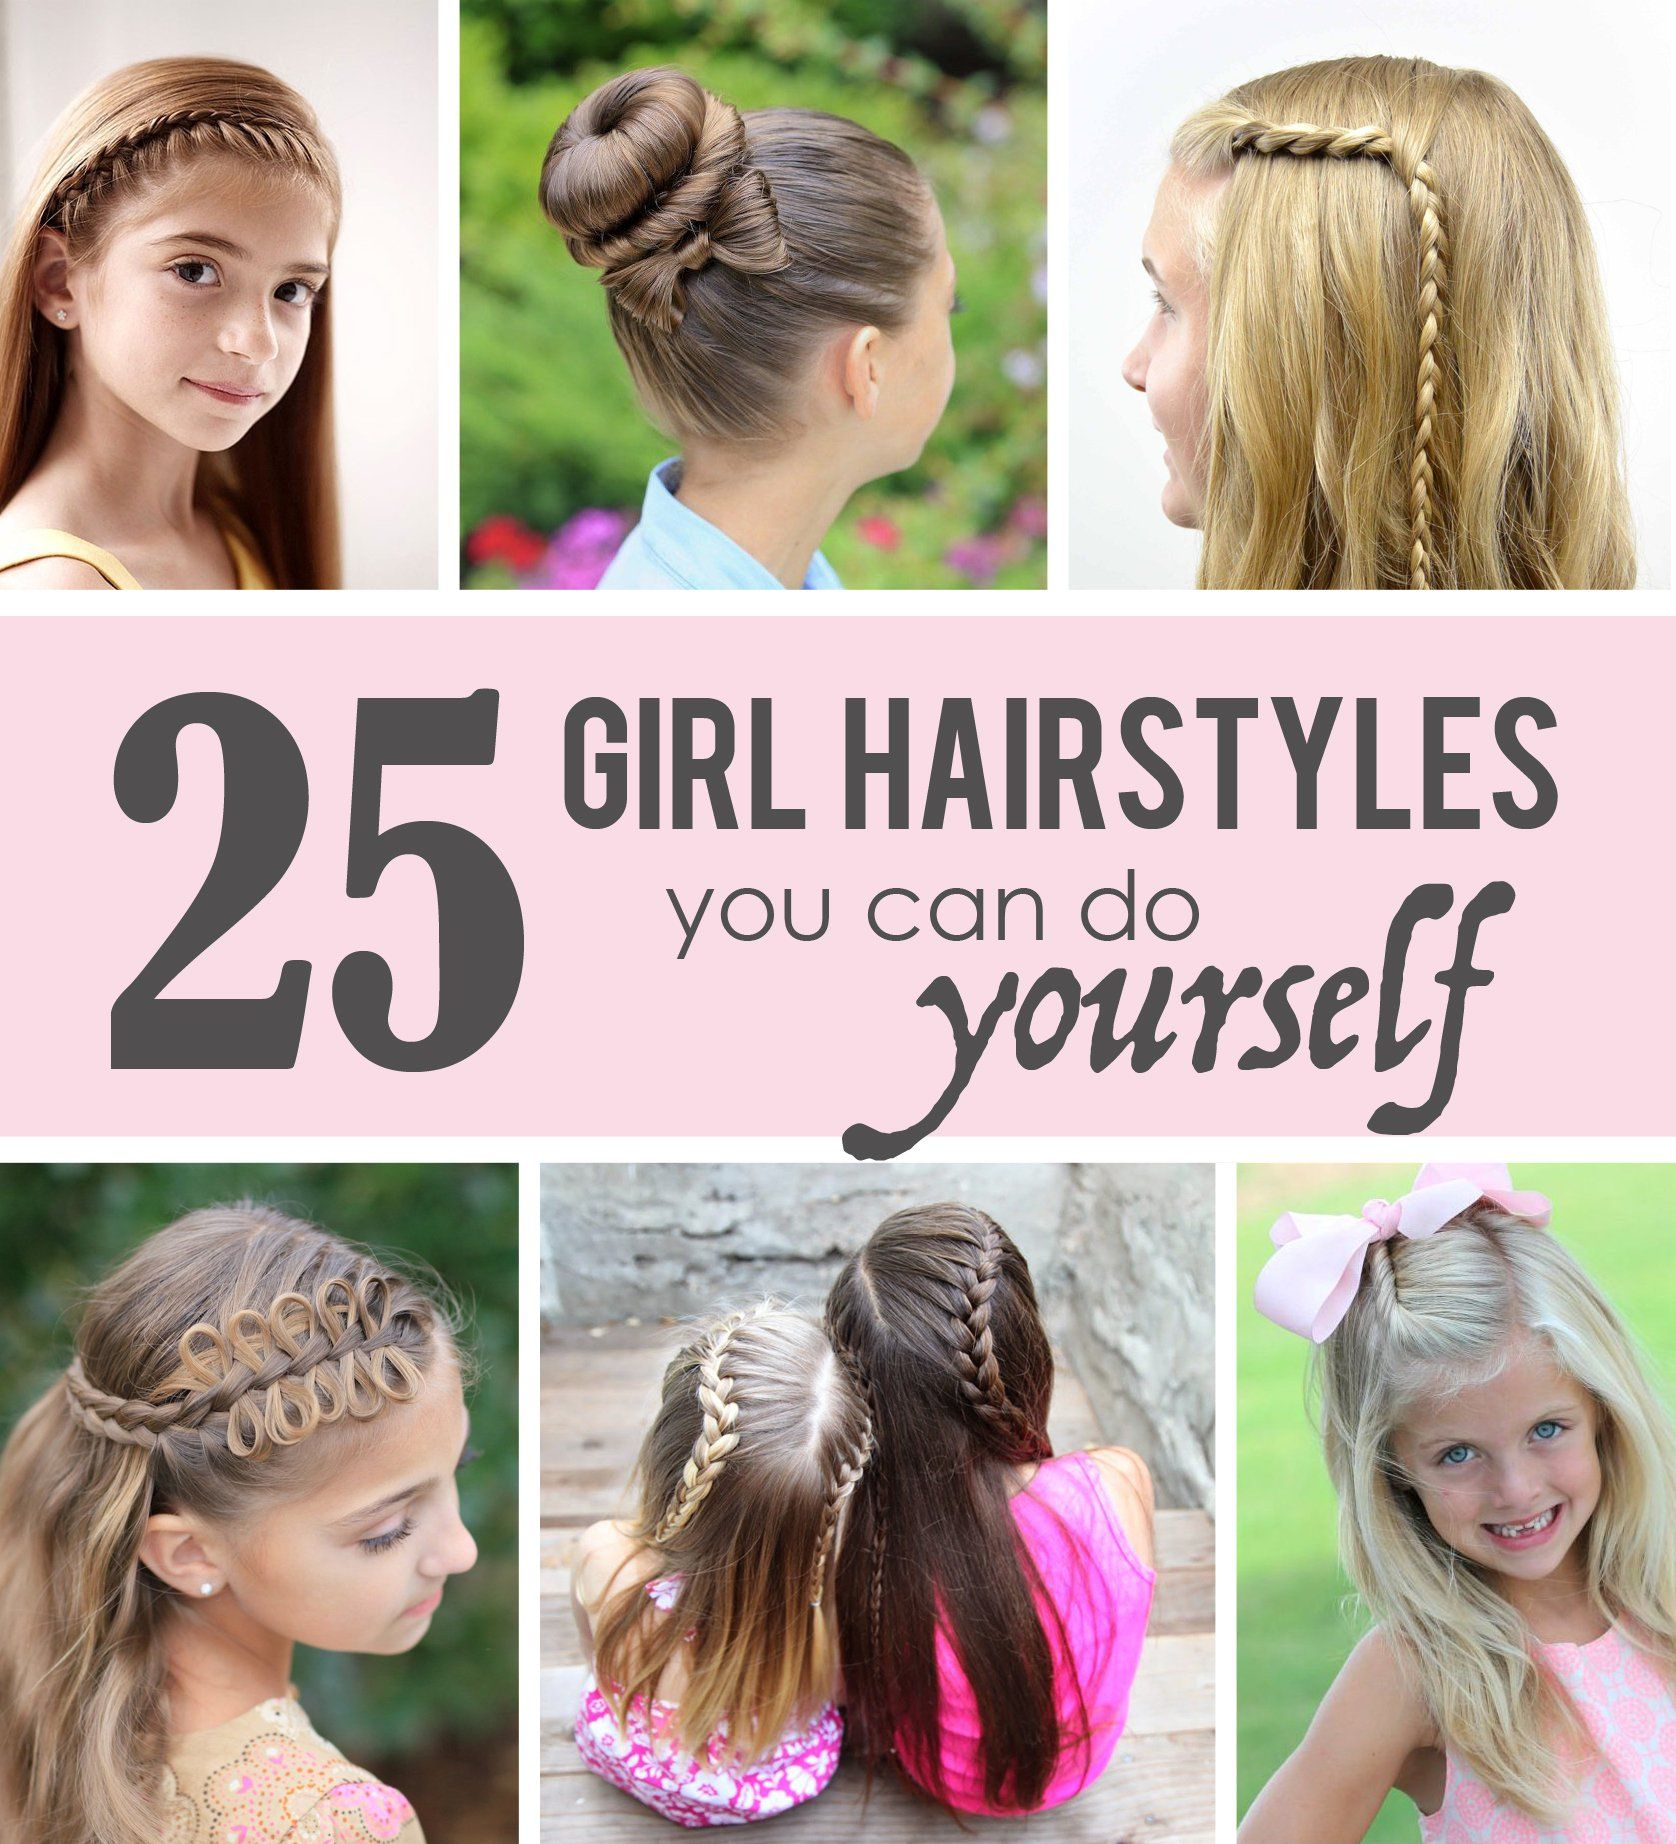 25 little girl hairstylesyou can do yourself girl hairstyles 25 little girl hairstylesyou can do yourself girls long hair solutioingenieria